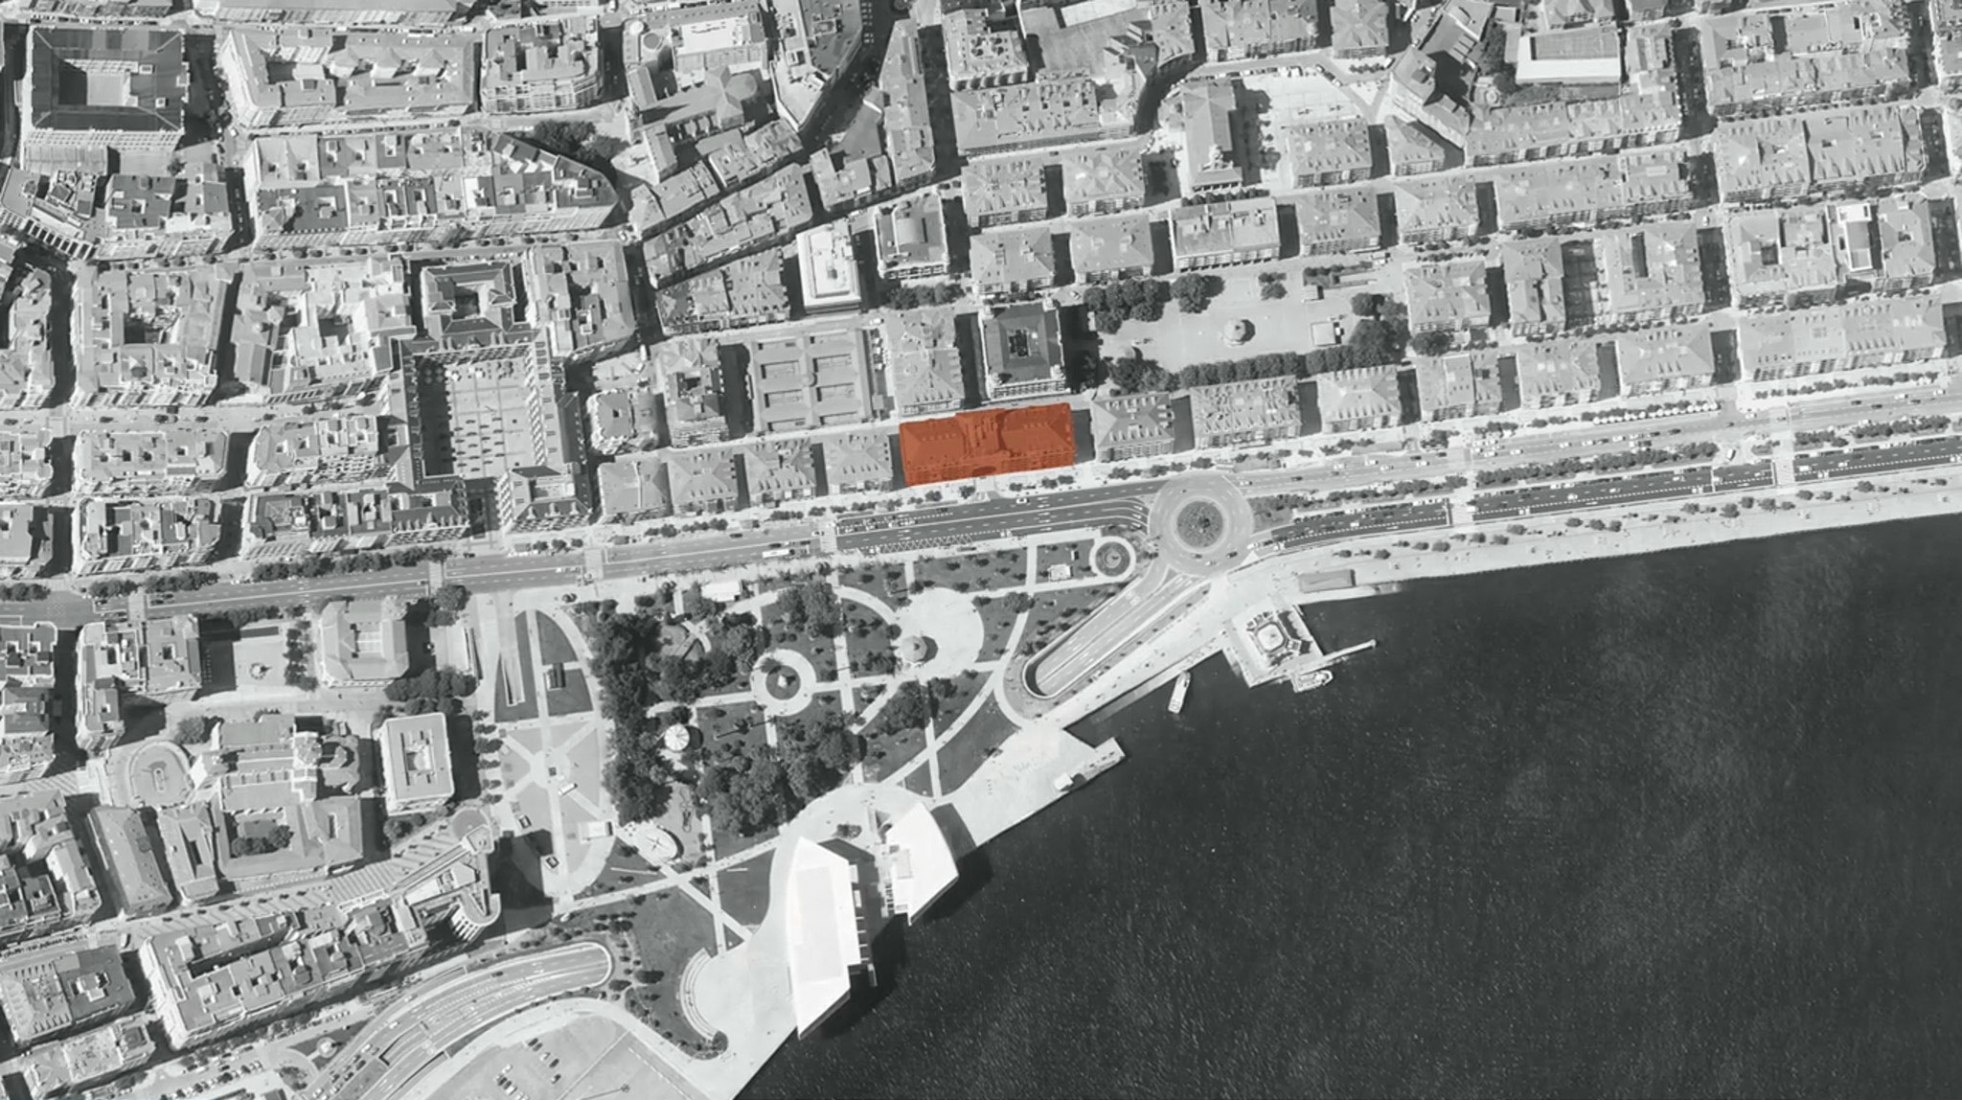 Site plan. Renovation of the Paseo Pereda building by David Chipperfield. Image courtesy of Santander.